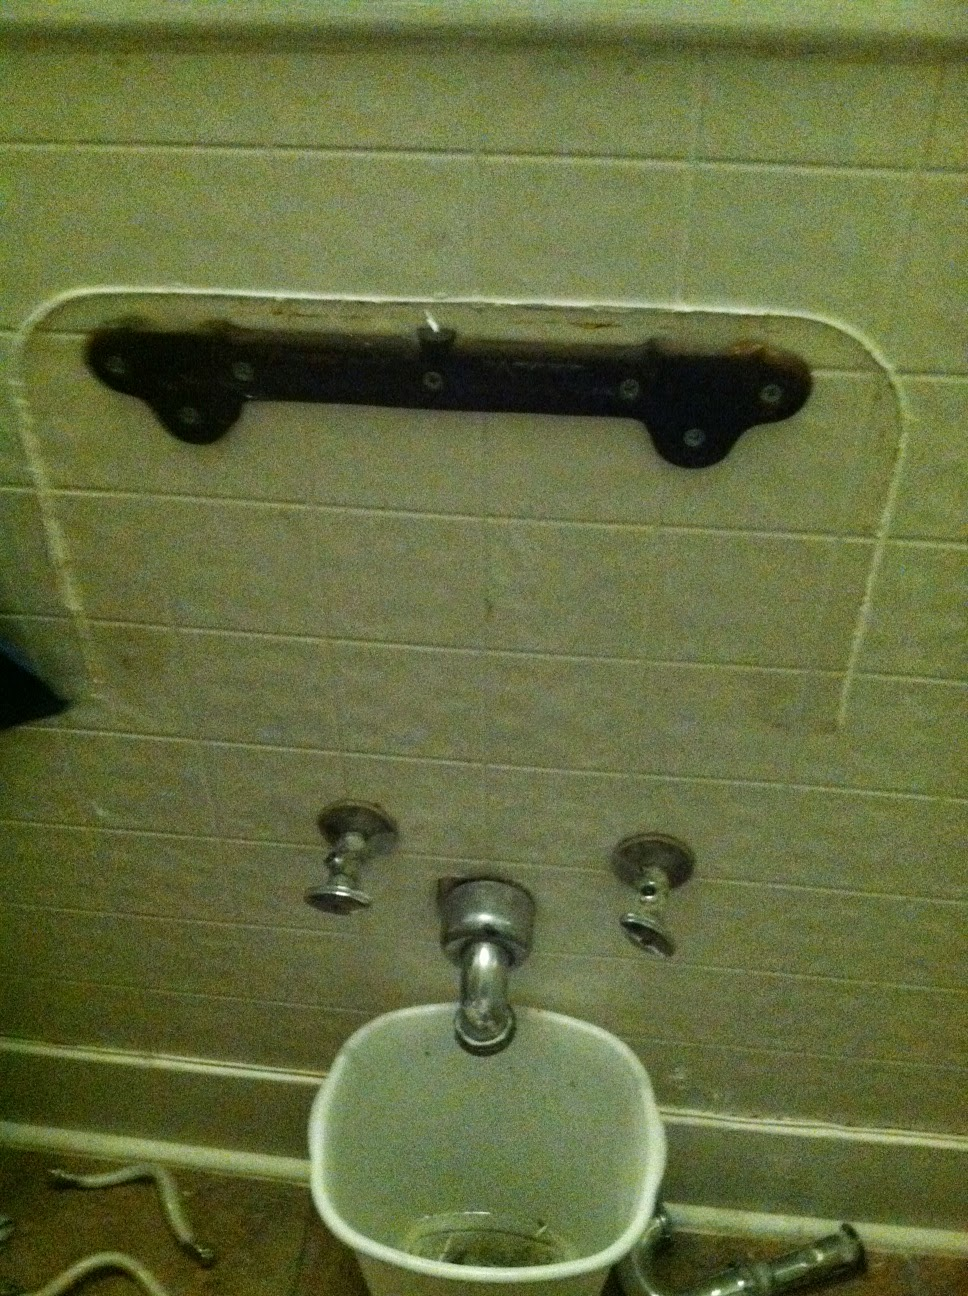 Lift old sink of wall mount bracket